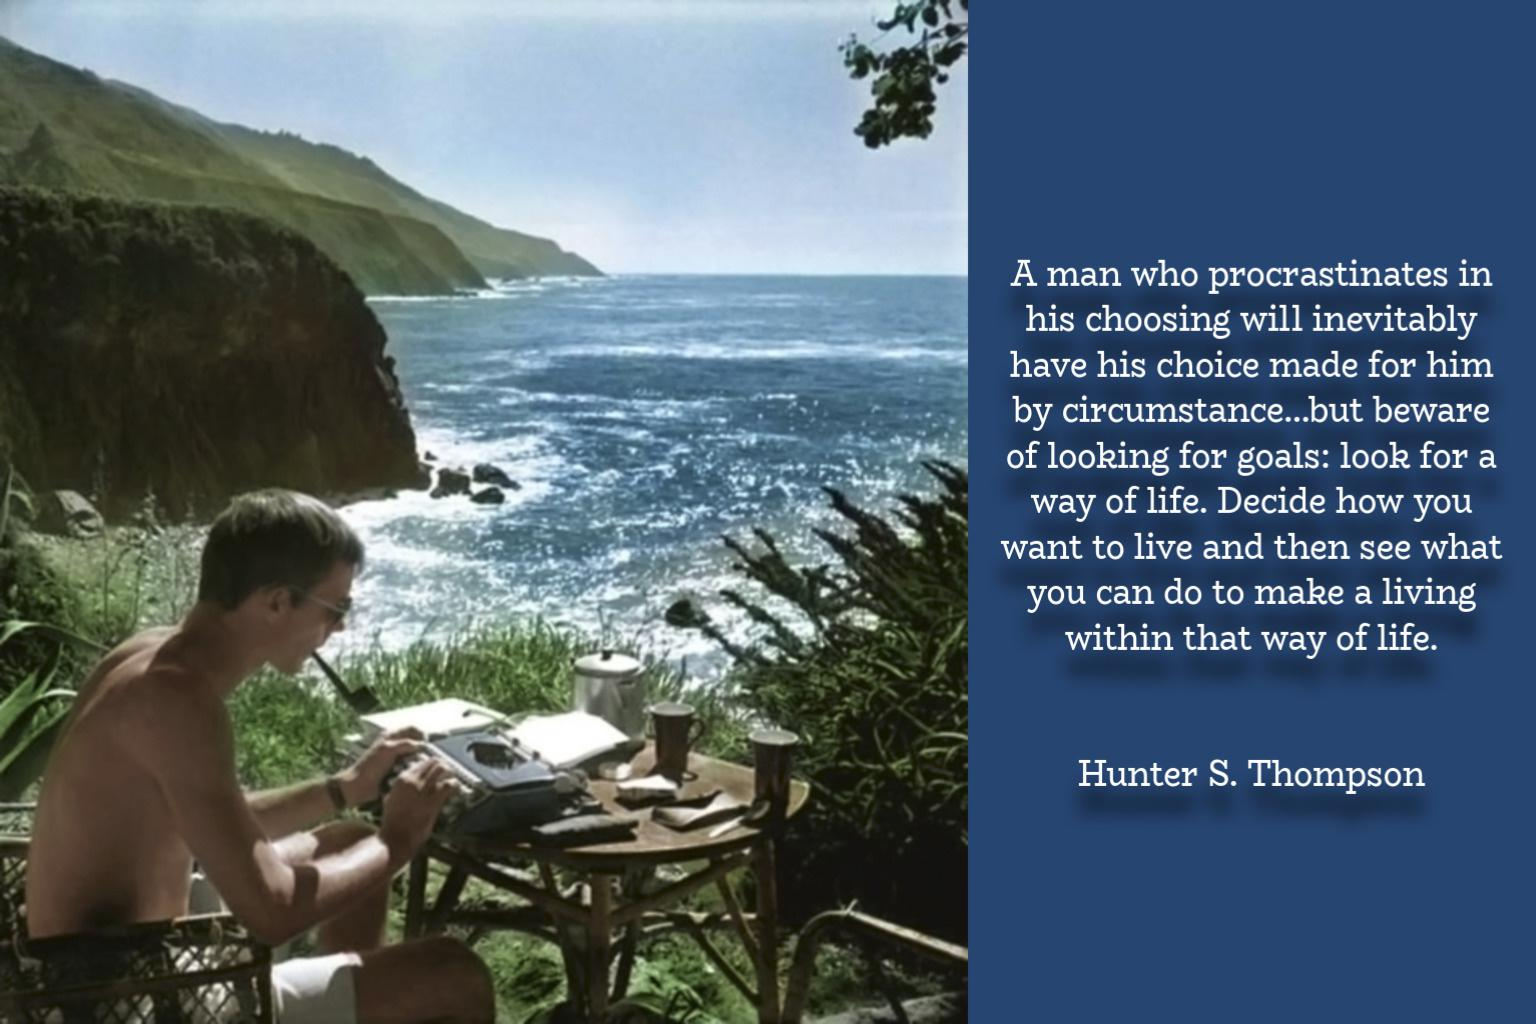 """A man who procrastinates in his choosing will inevitably have his choice made for him by circumstance…but beware of looking for goals: look for a way of life. Decide how you want to live and then see what you can do to make a living within that way of life."" – Hunter S. Thompson [1536×1024]"